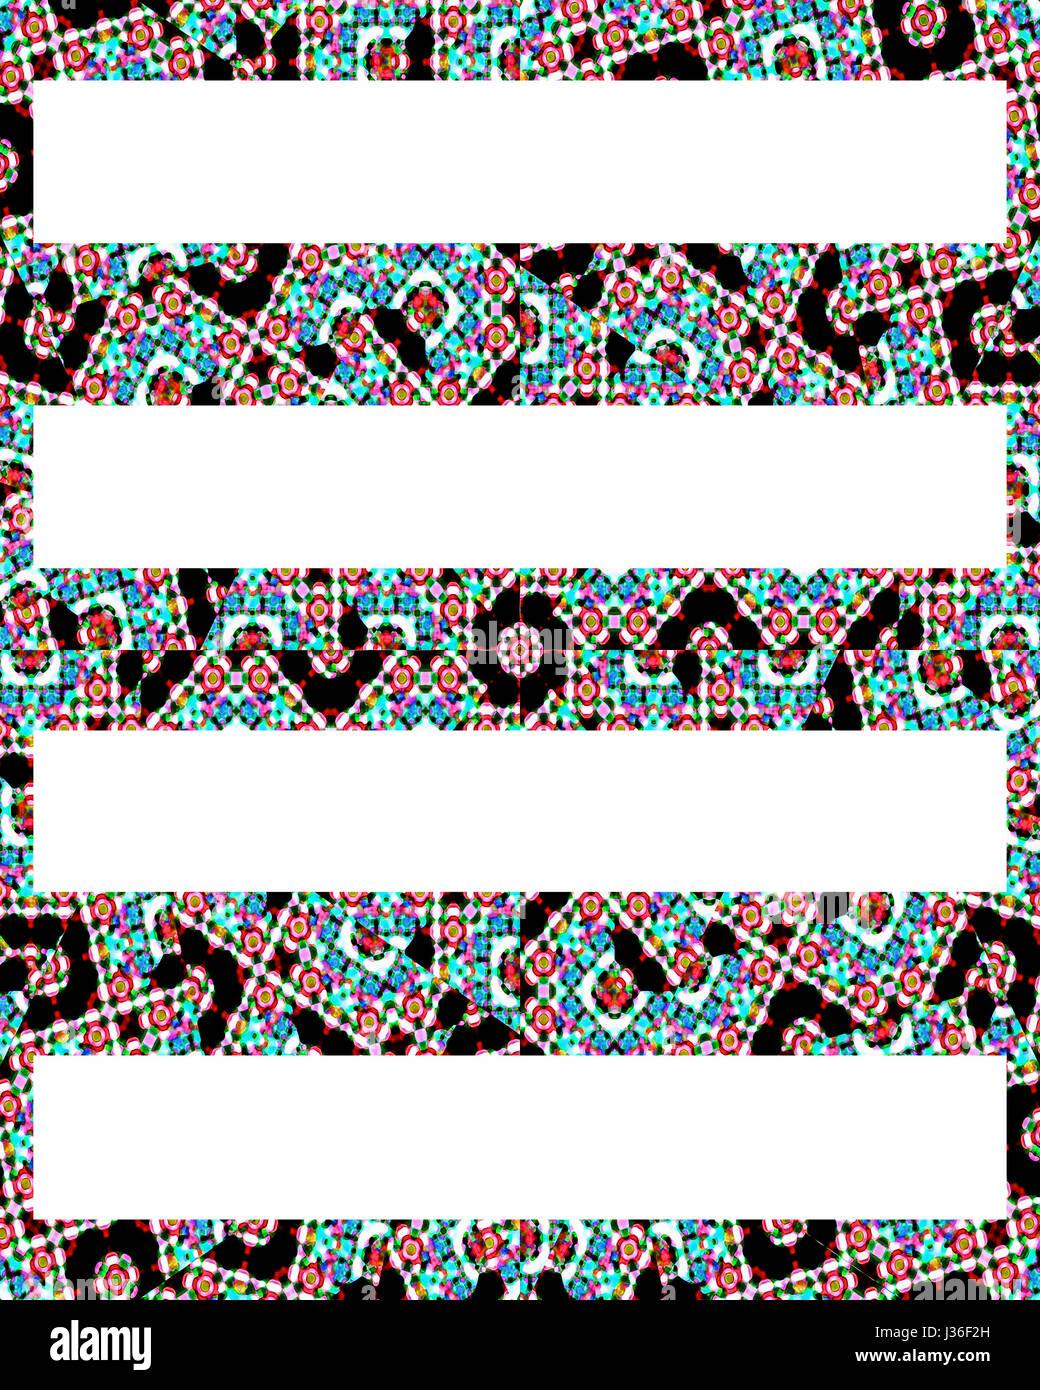 Digital technique abstract geometric stripes pattern background design in mixed colors Stock Photo